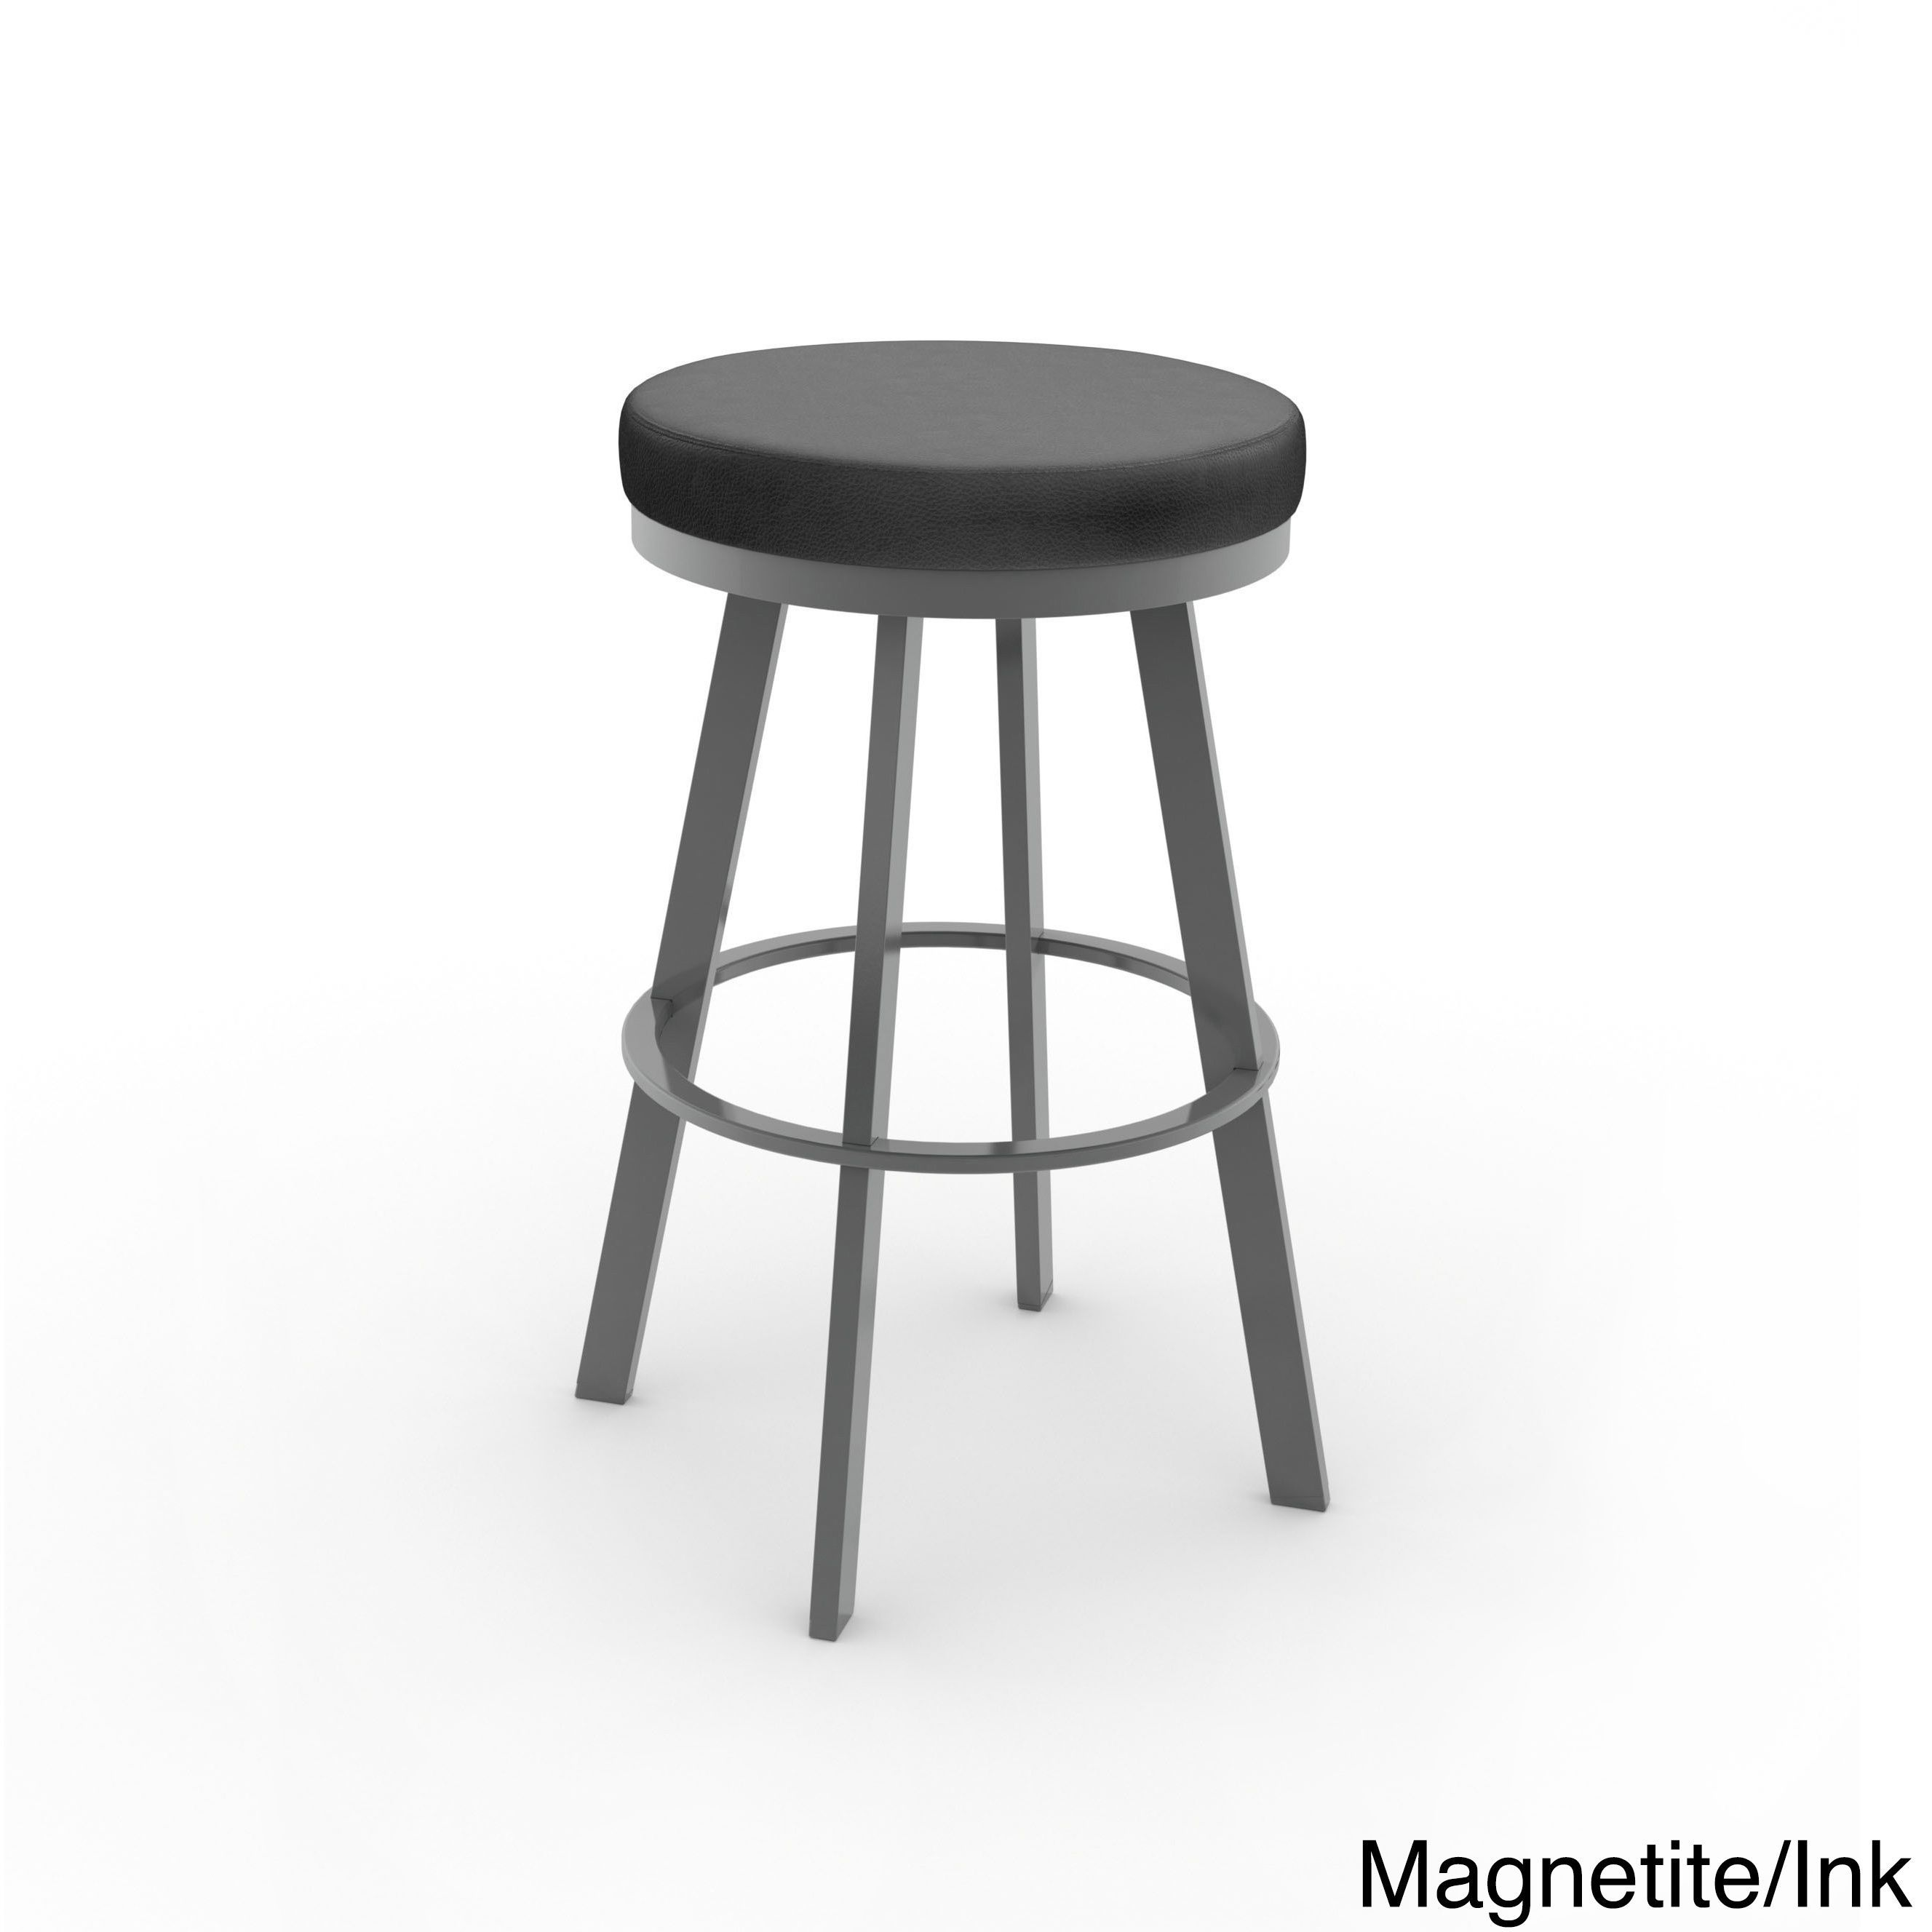 Astonishing Amisco Swice 30 Swivel Bar Stool Grey Metal Charcoal Black Squirreltailoven Fun Painted Chair Ideas Images Squirreltailovenorg